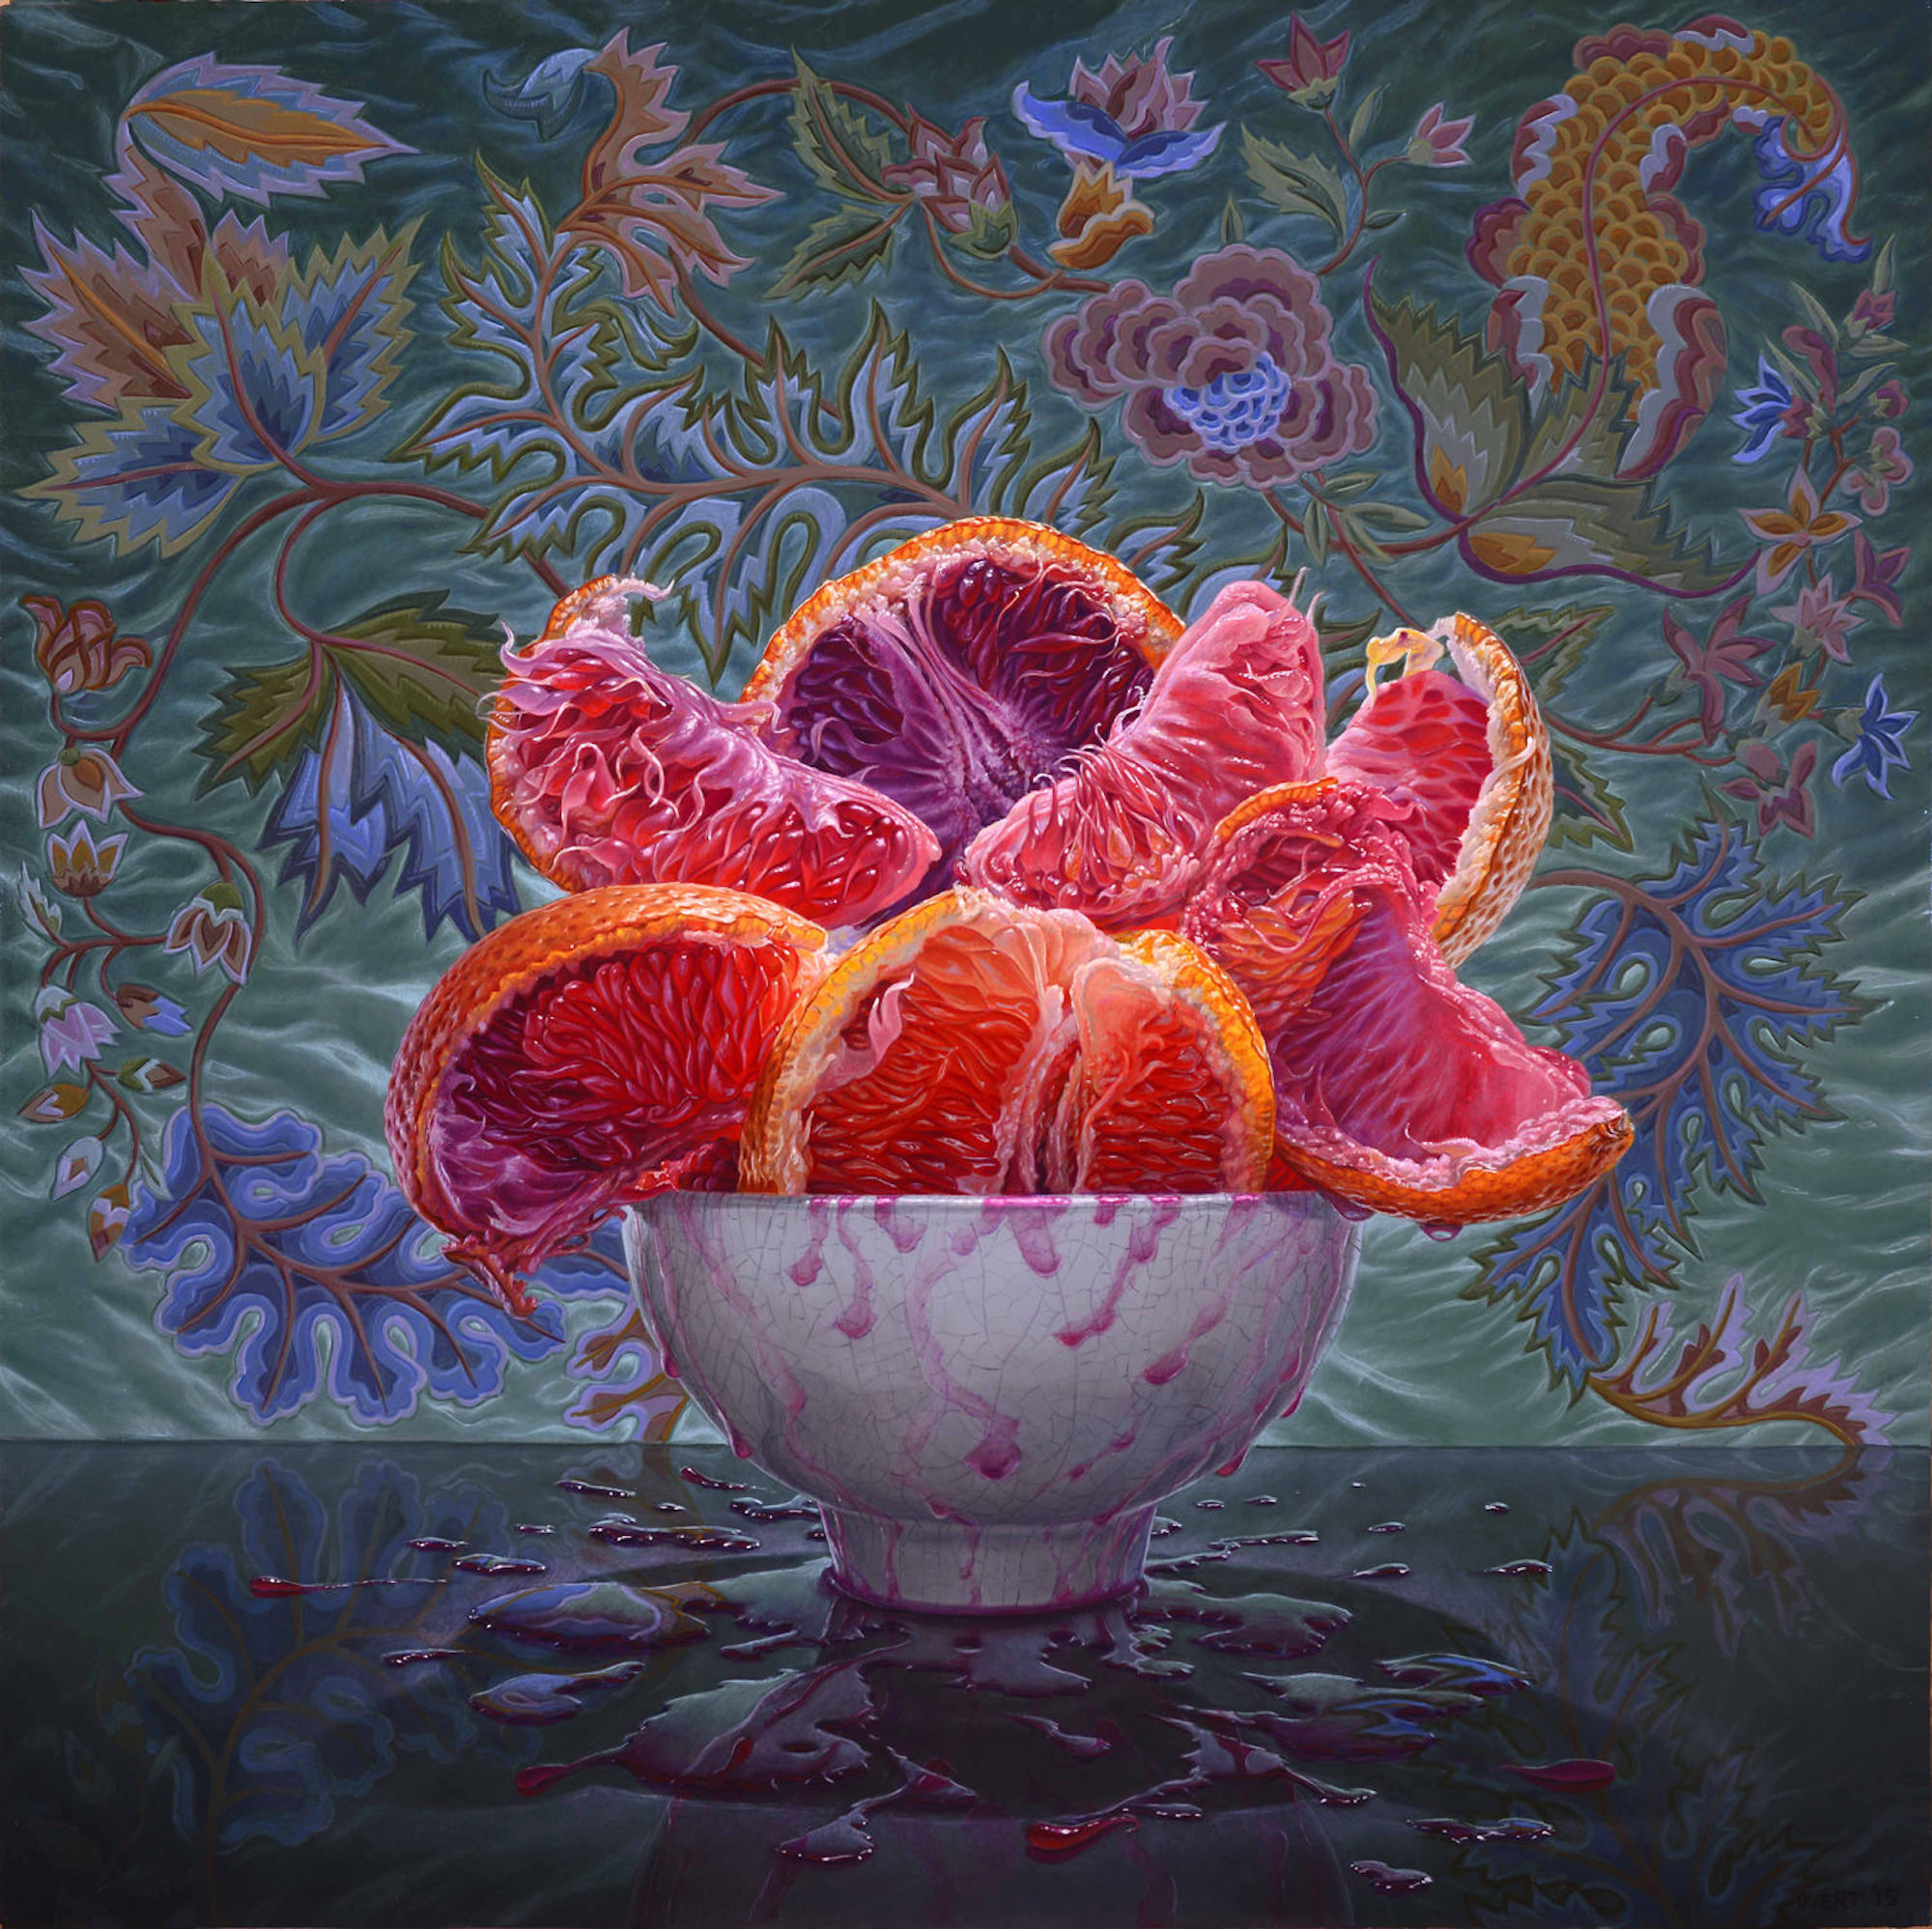 Eric Wert, Blood Oranges, 2015